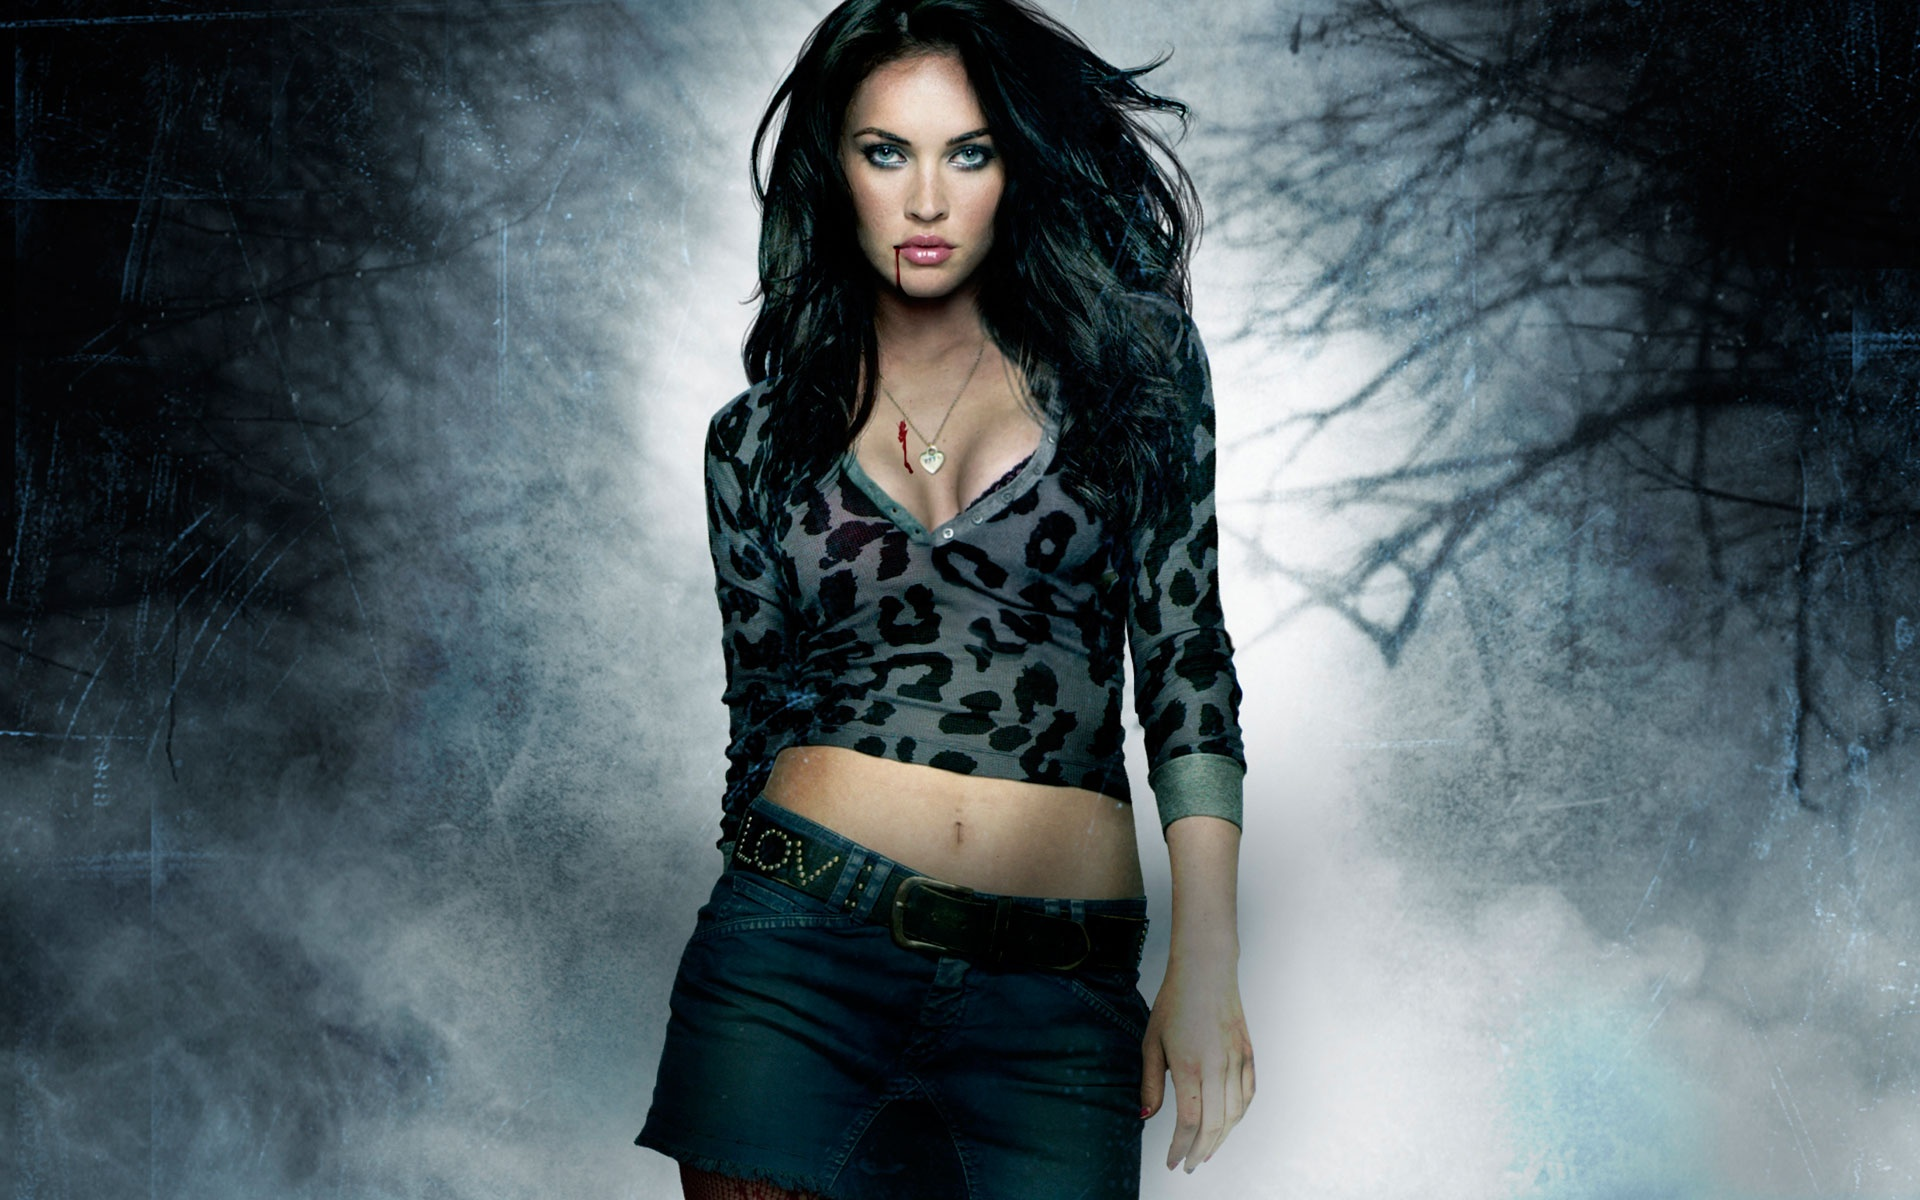 Megan fox in jennifers body poster wallpapers in jpg format for free 19201080 19201200 voltagebd Images